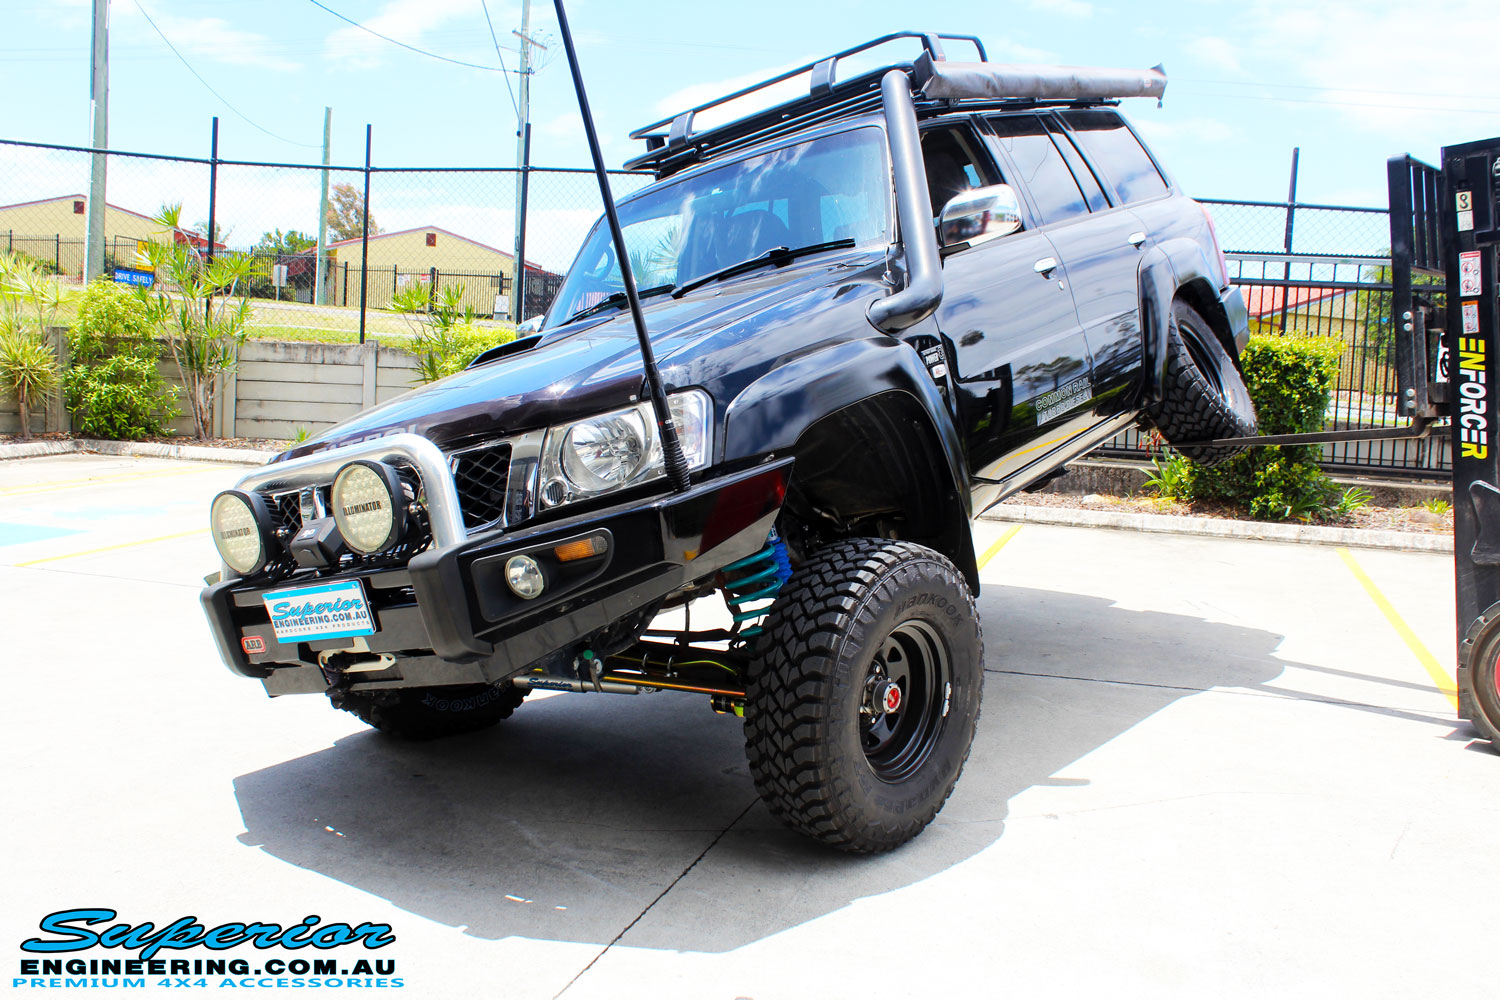 "Front left side view of a Black Nissan GU Patrol Wagon being flexed after fitting the Superior 2"" Inch Remote Reservoir Hyperflex Kit with Front & Rear Superflex Sway Bar Kits, Comp Spec 4340m Tie Rod, Long Arms and Coil Tower Brace Kit"